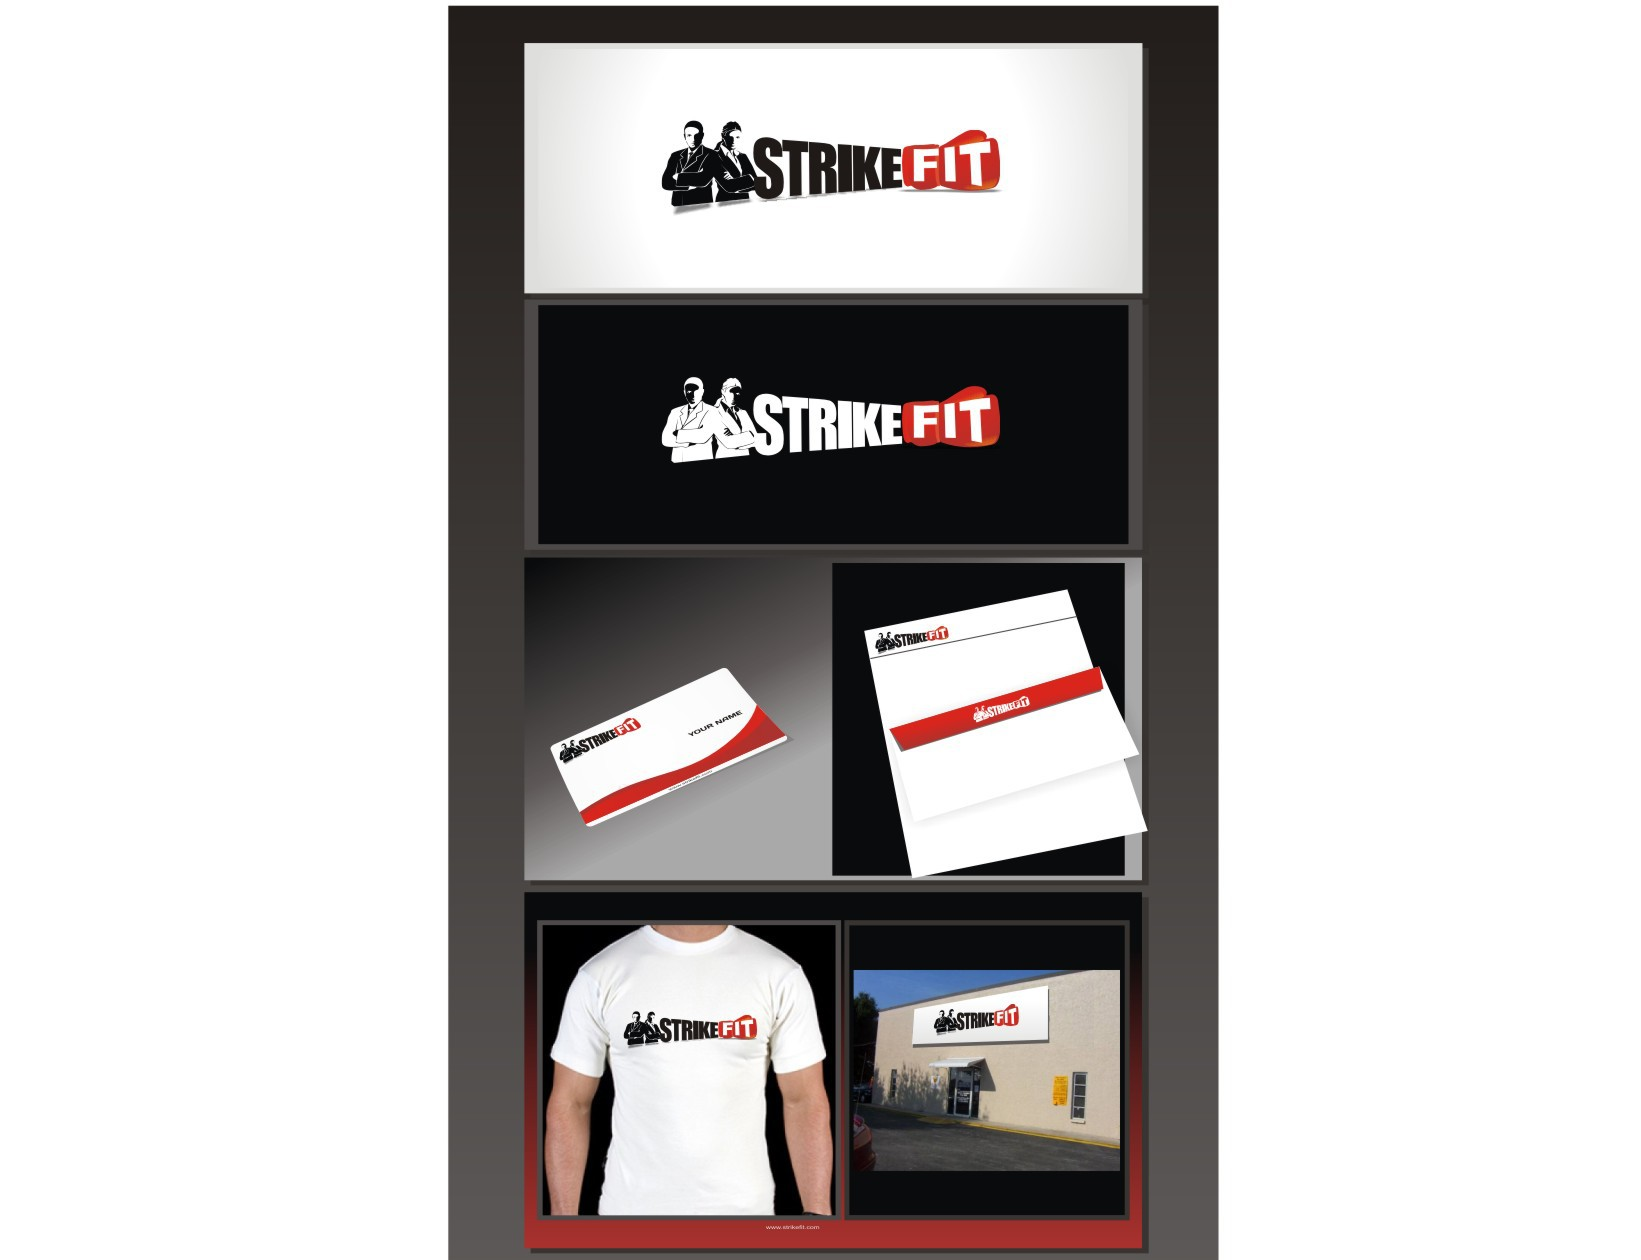 New logo wanted for Strikefit